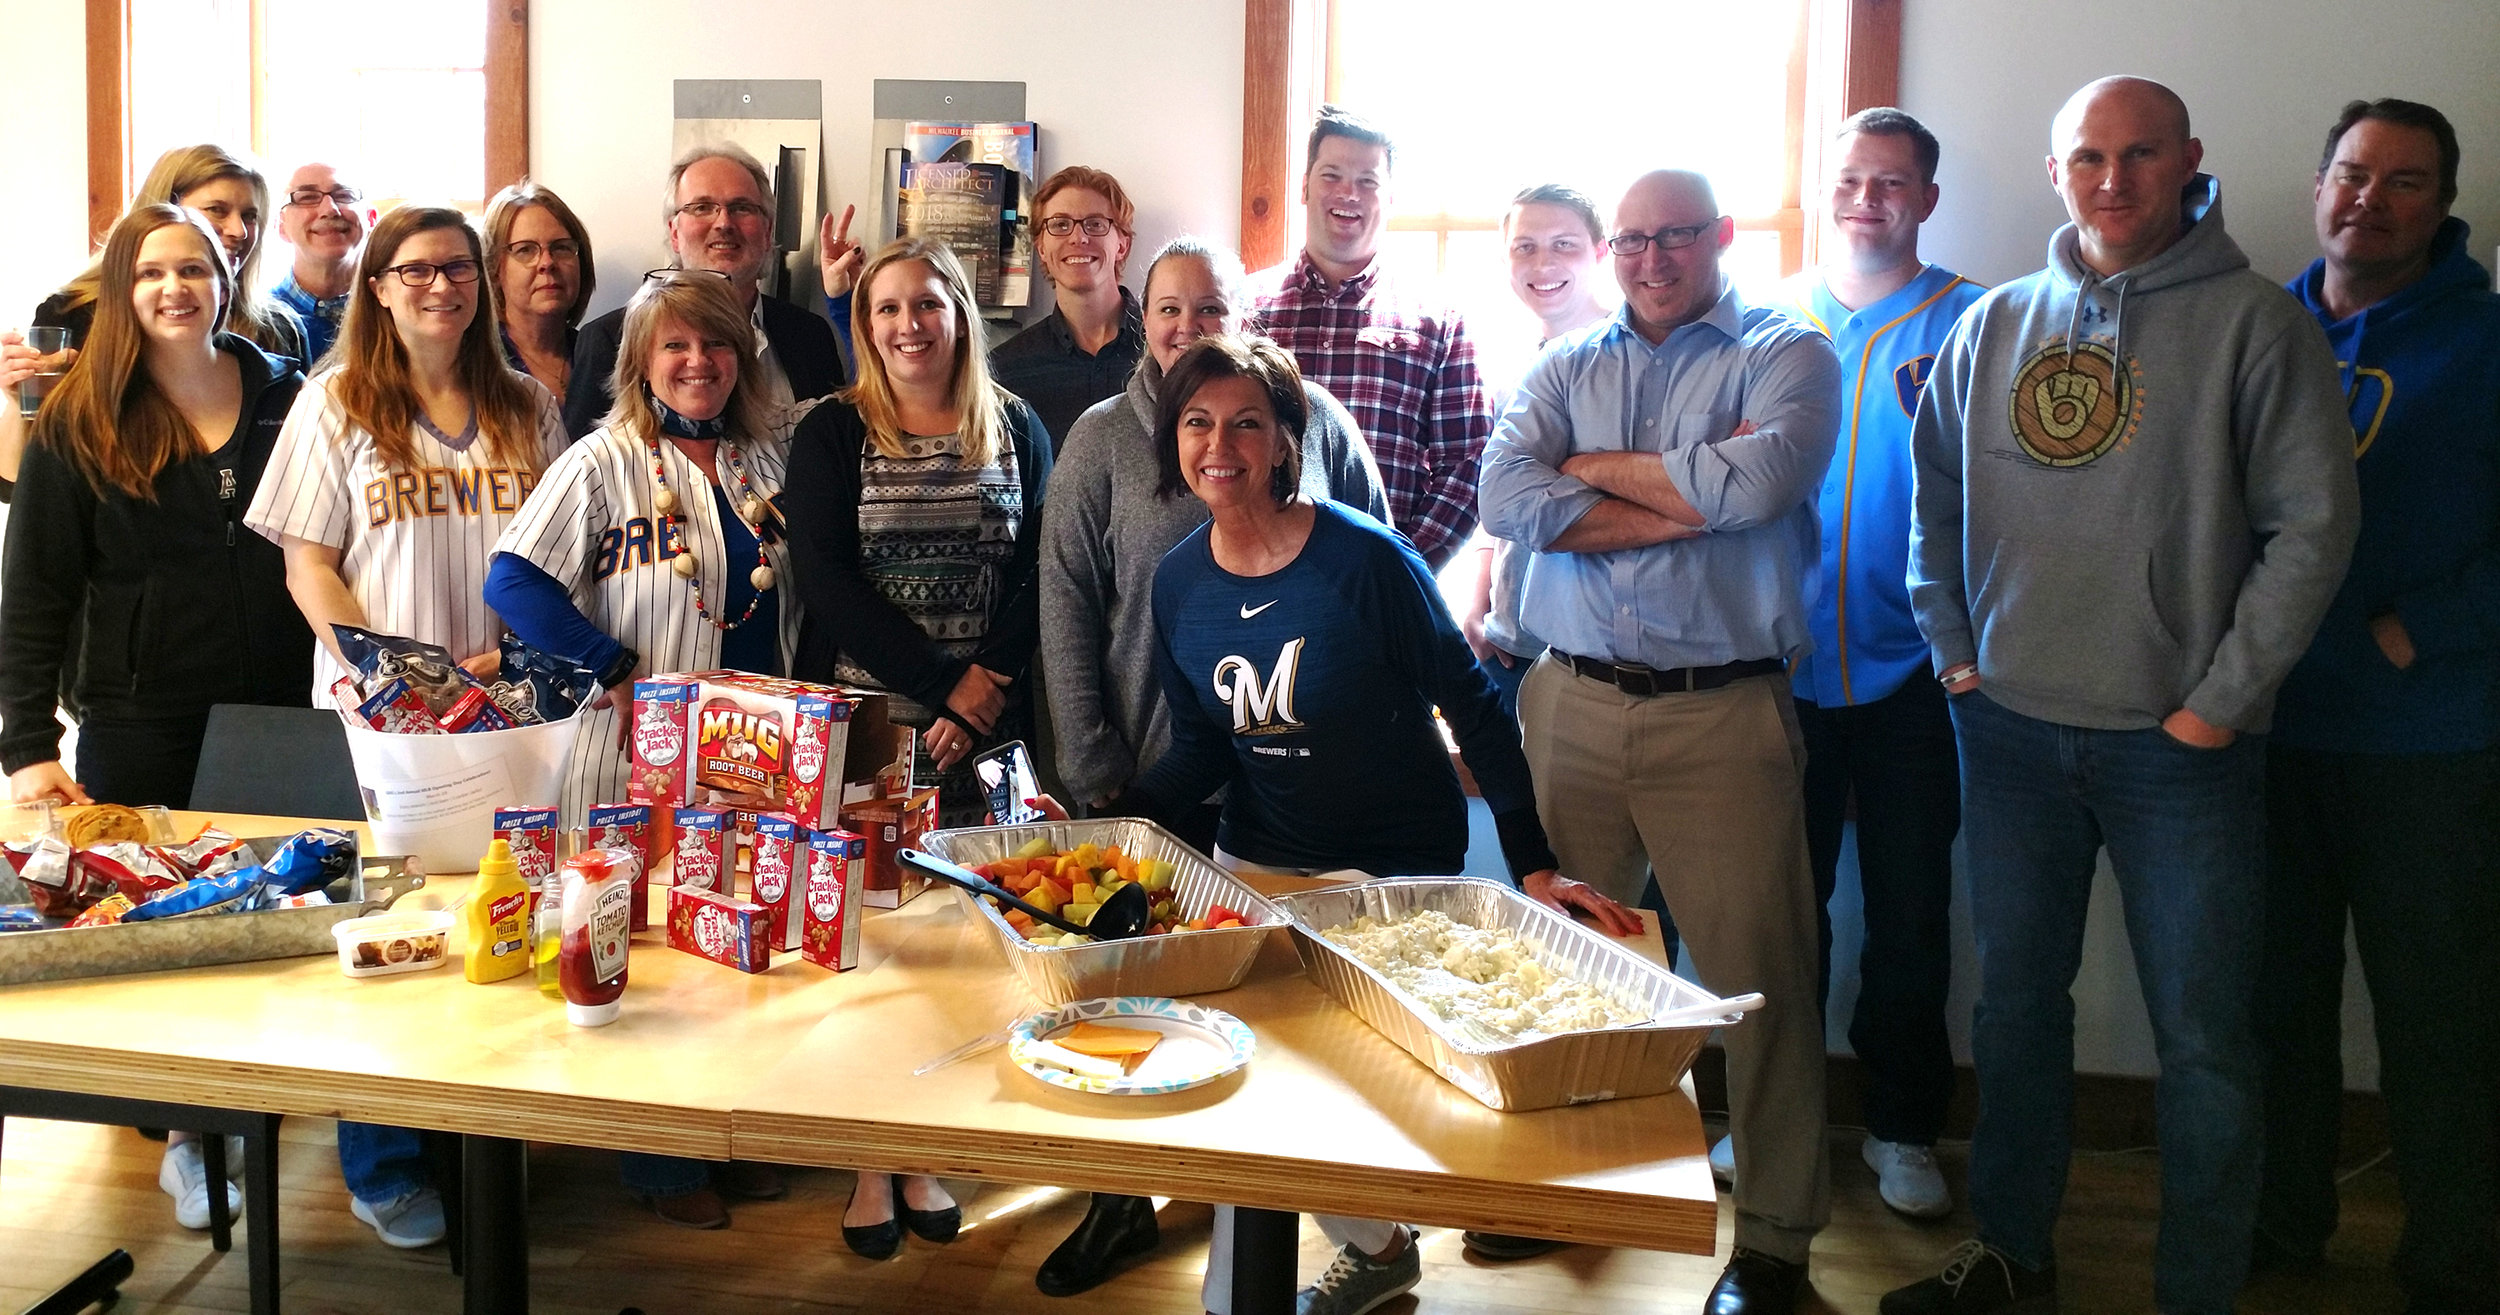 GDG's Cedarburg office celebrates MLB Opening Day 2019.